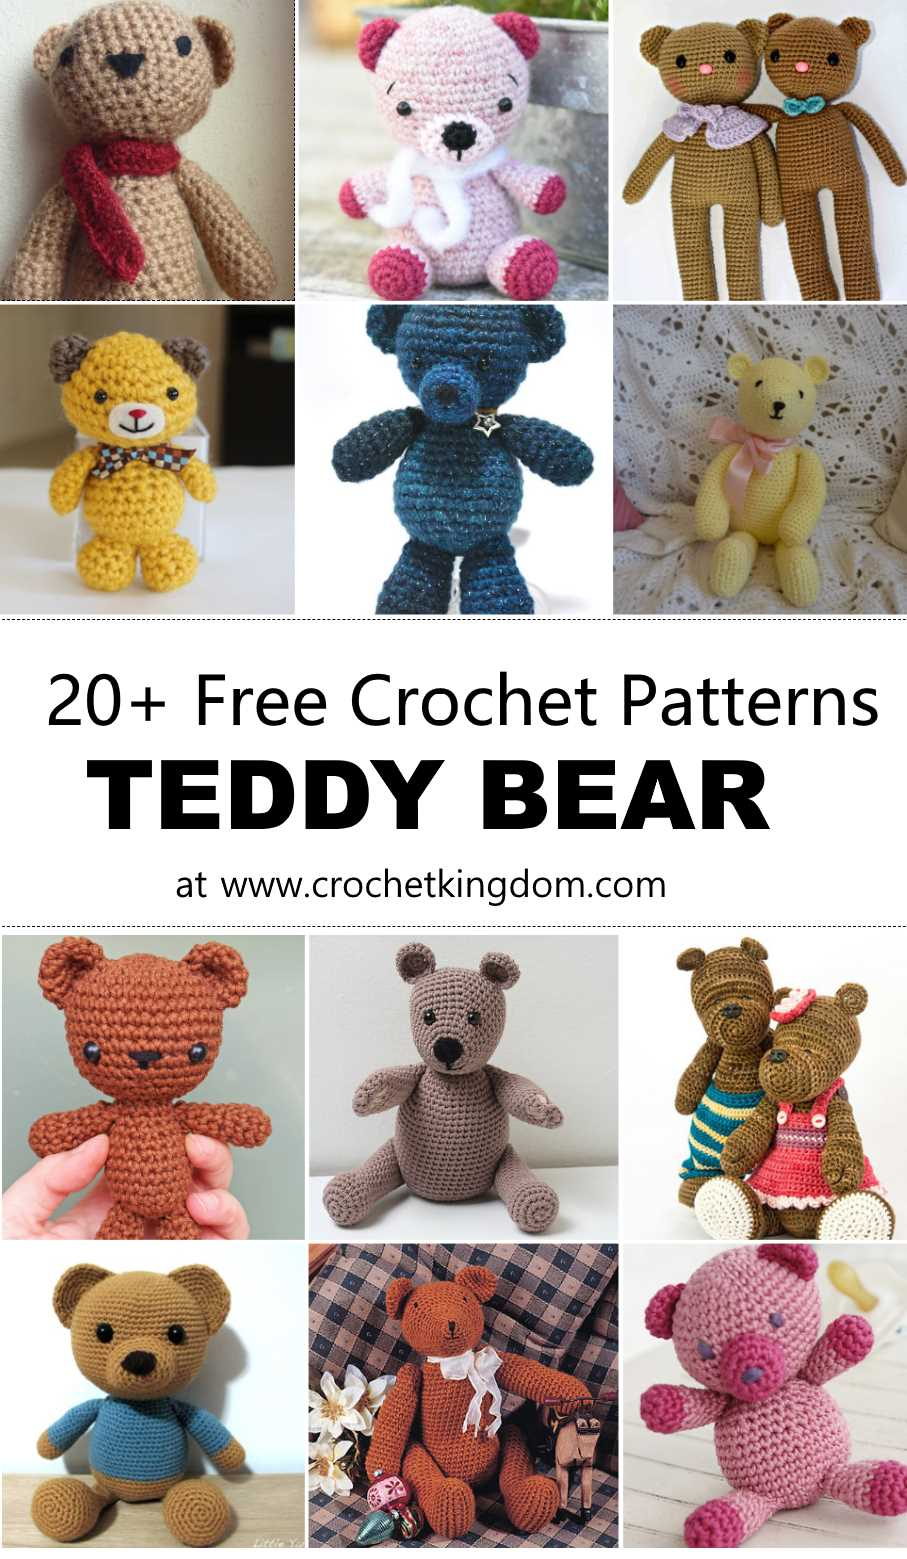 20 Free Crochet Teddy Bear Patterns ⋆ Crochet Kingdom